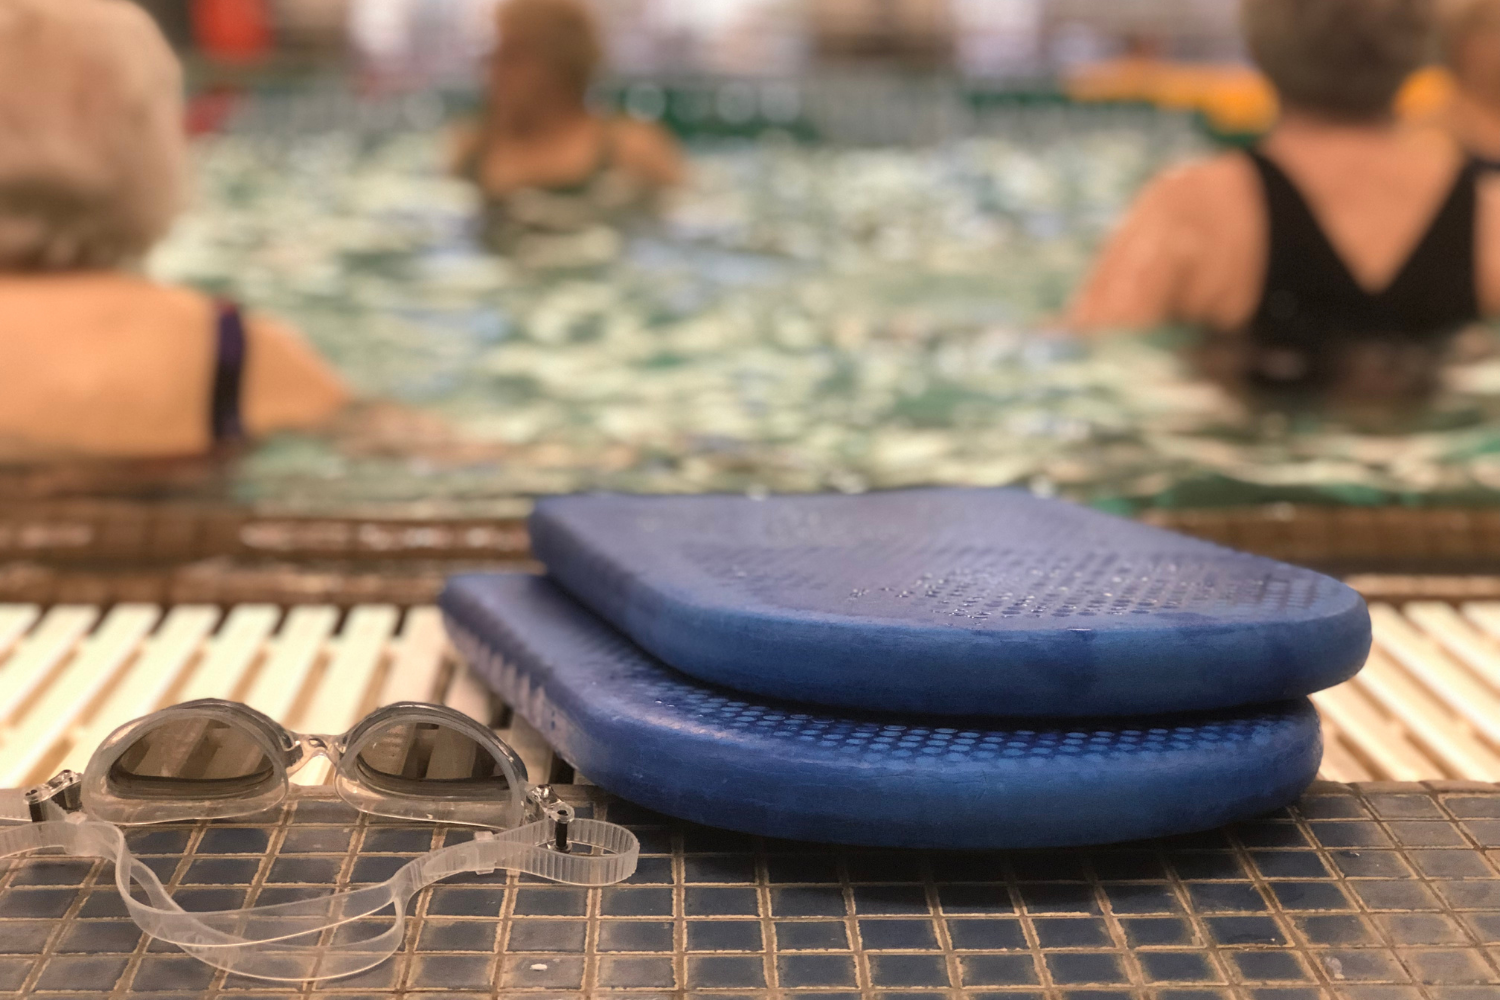 kickboards and goggles for senior water aerobics class